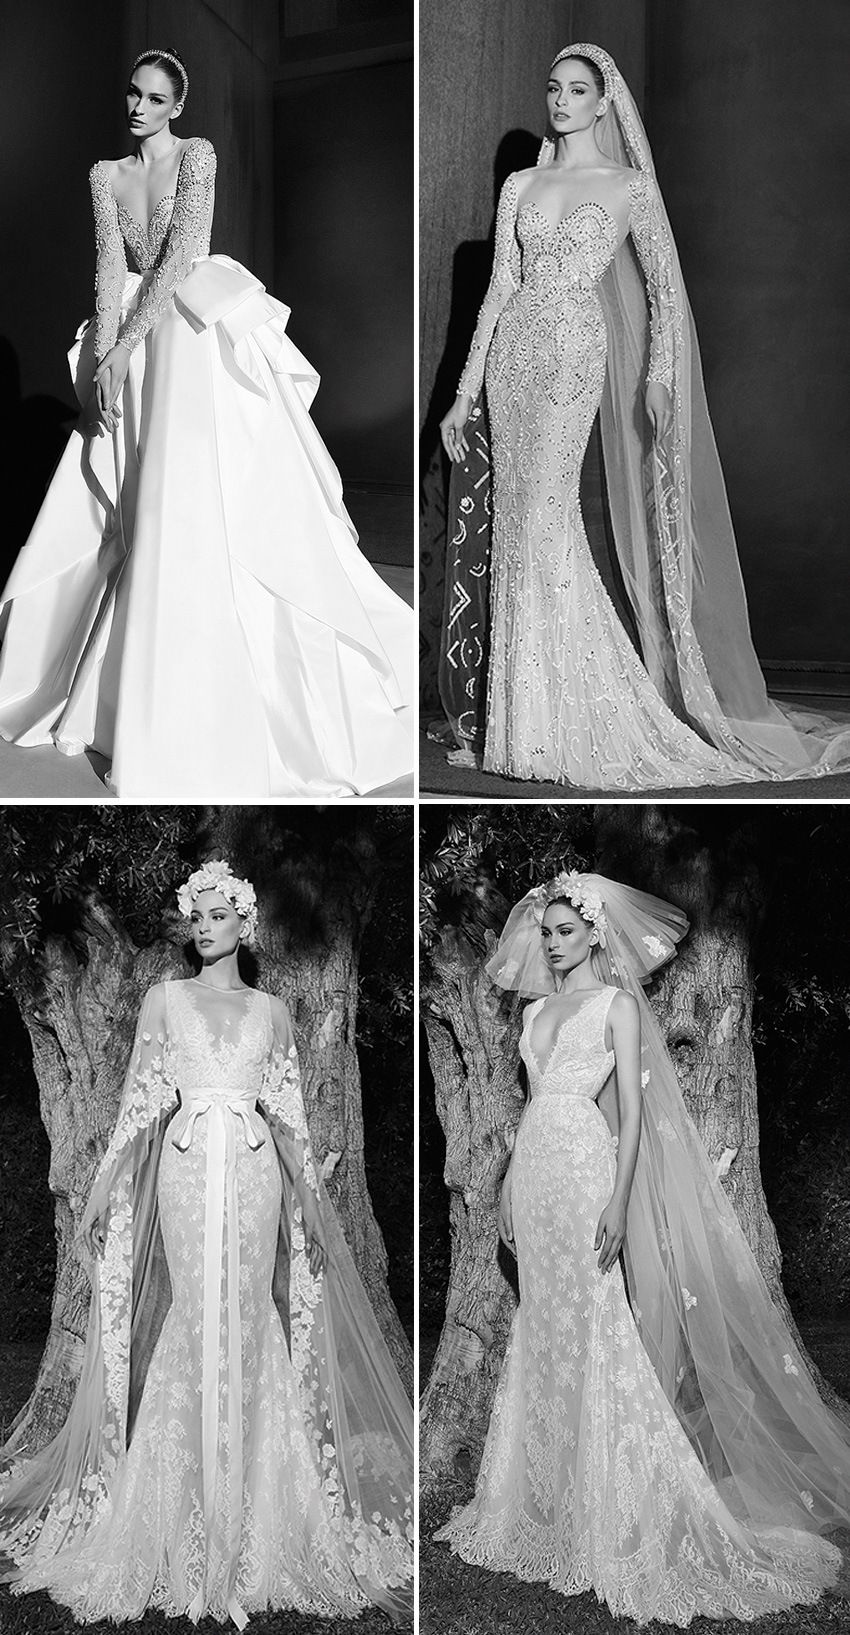 Zuhair Murad Spring 2022 Bridal collection Transparency is ennobled with the embroidered lace in Perfect Wedding Magazine